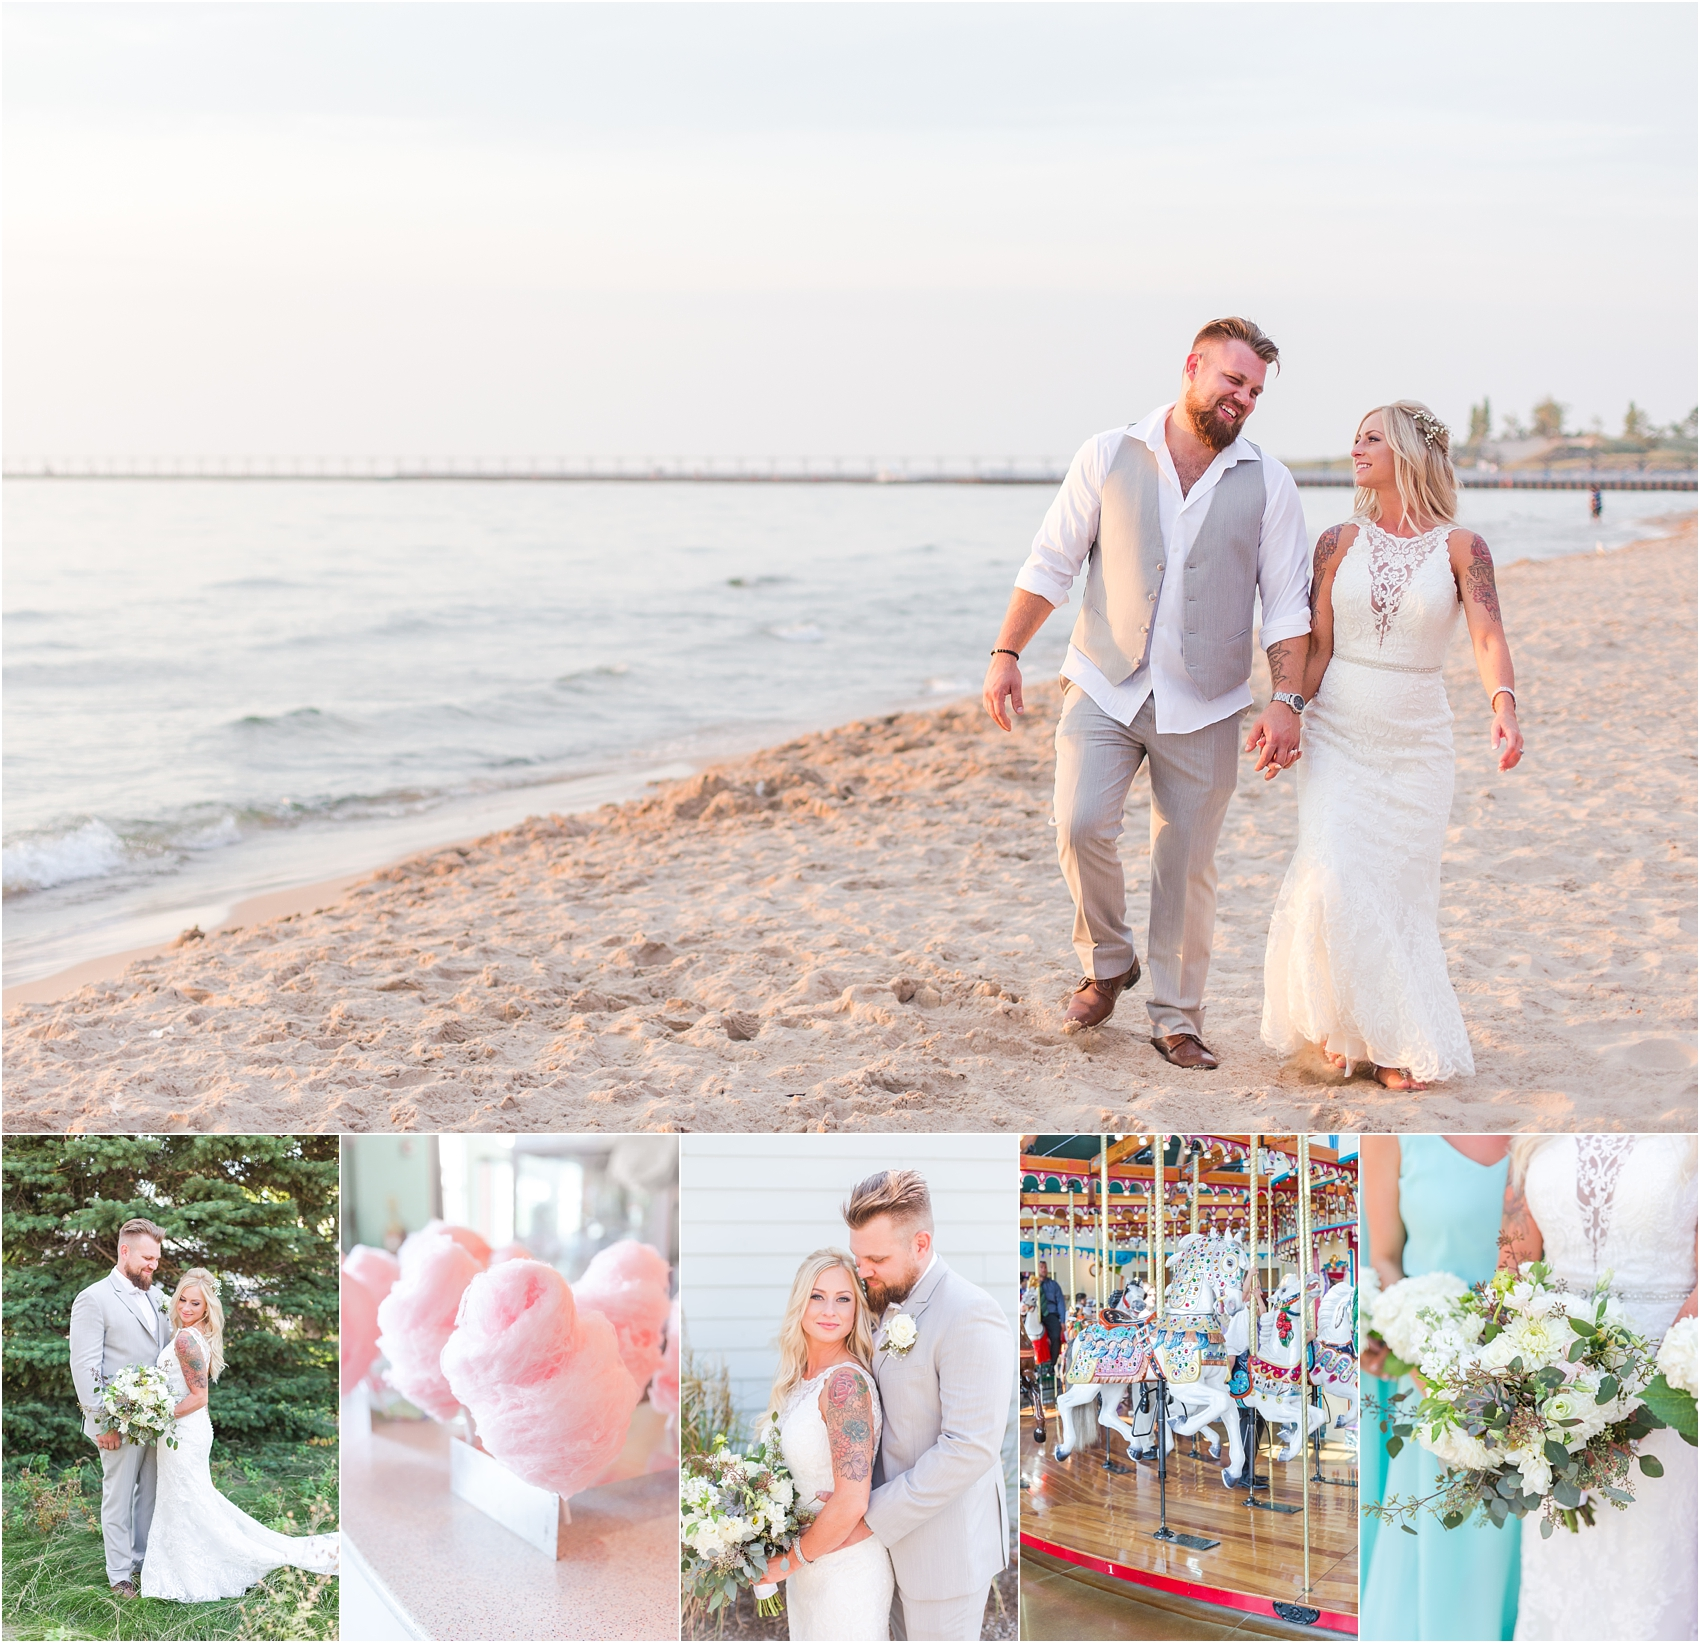 fun-whimsical-beach-wedding-photos-in-st-joseph-michigan-by-courtney-carolyn-photography_0104.jpg